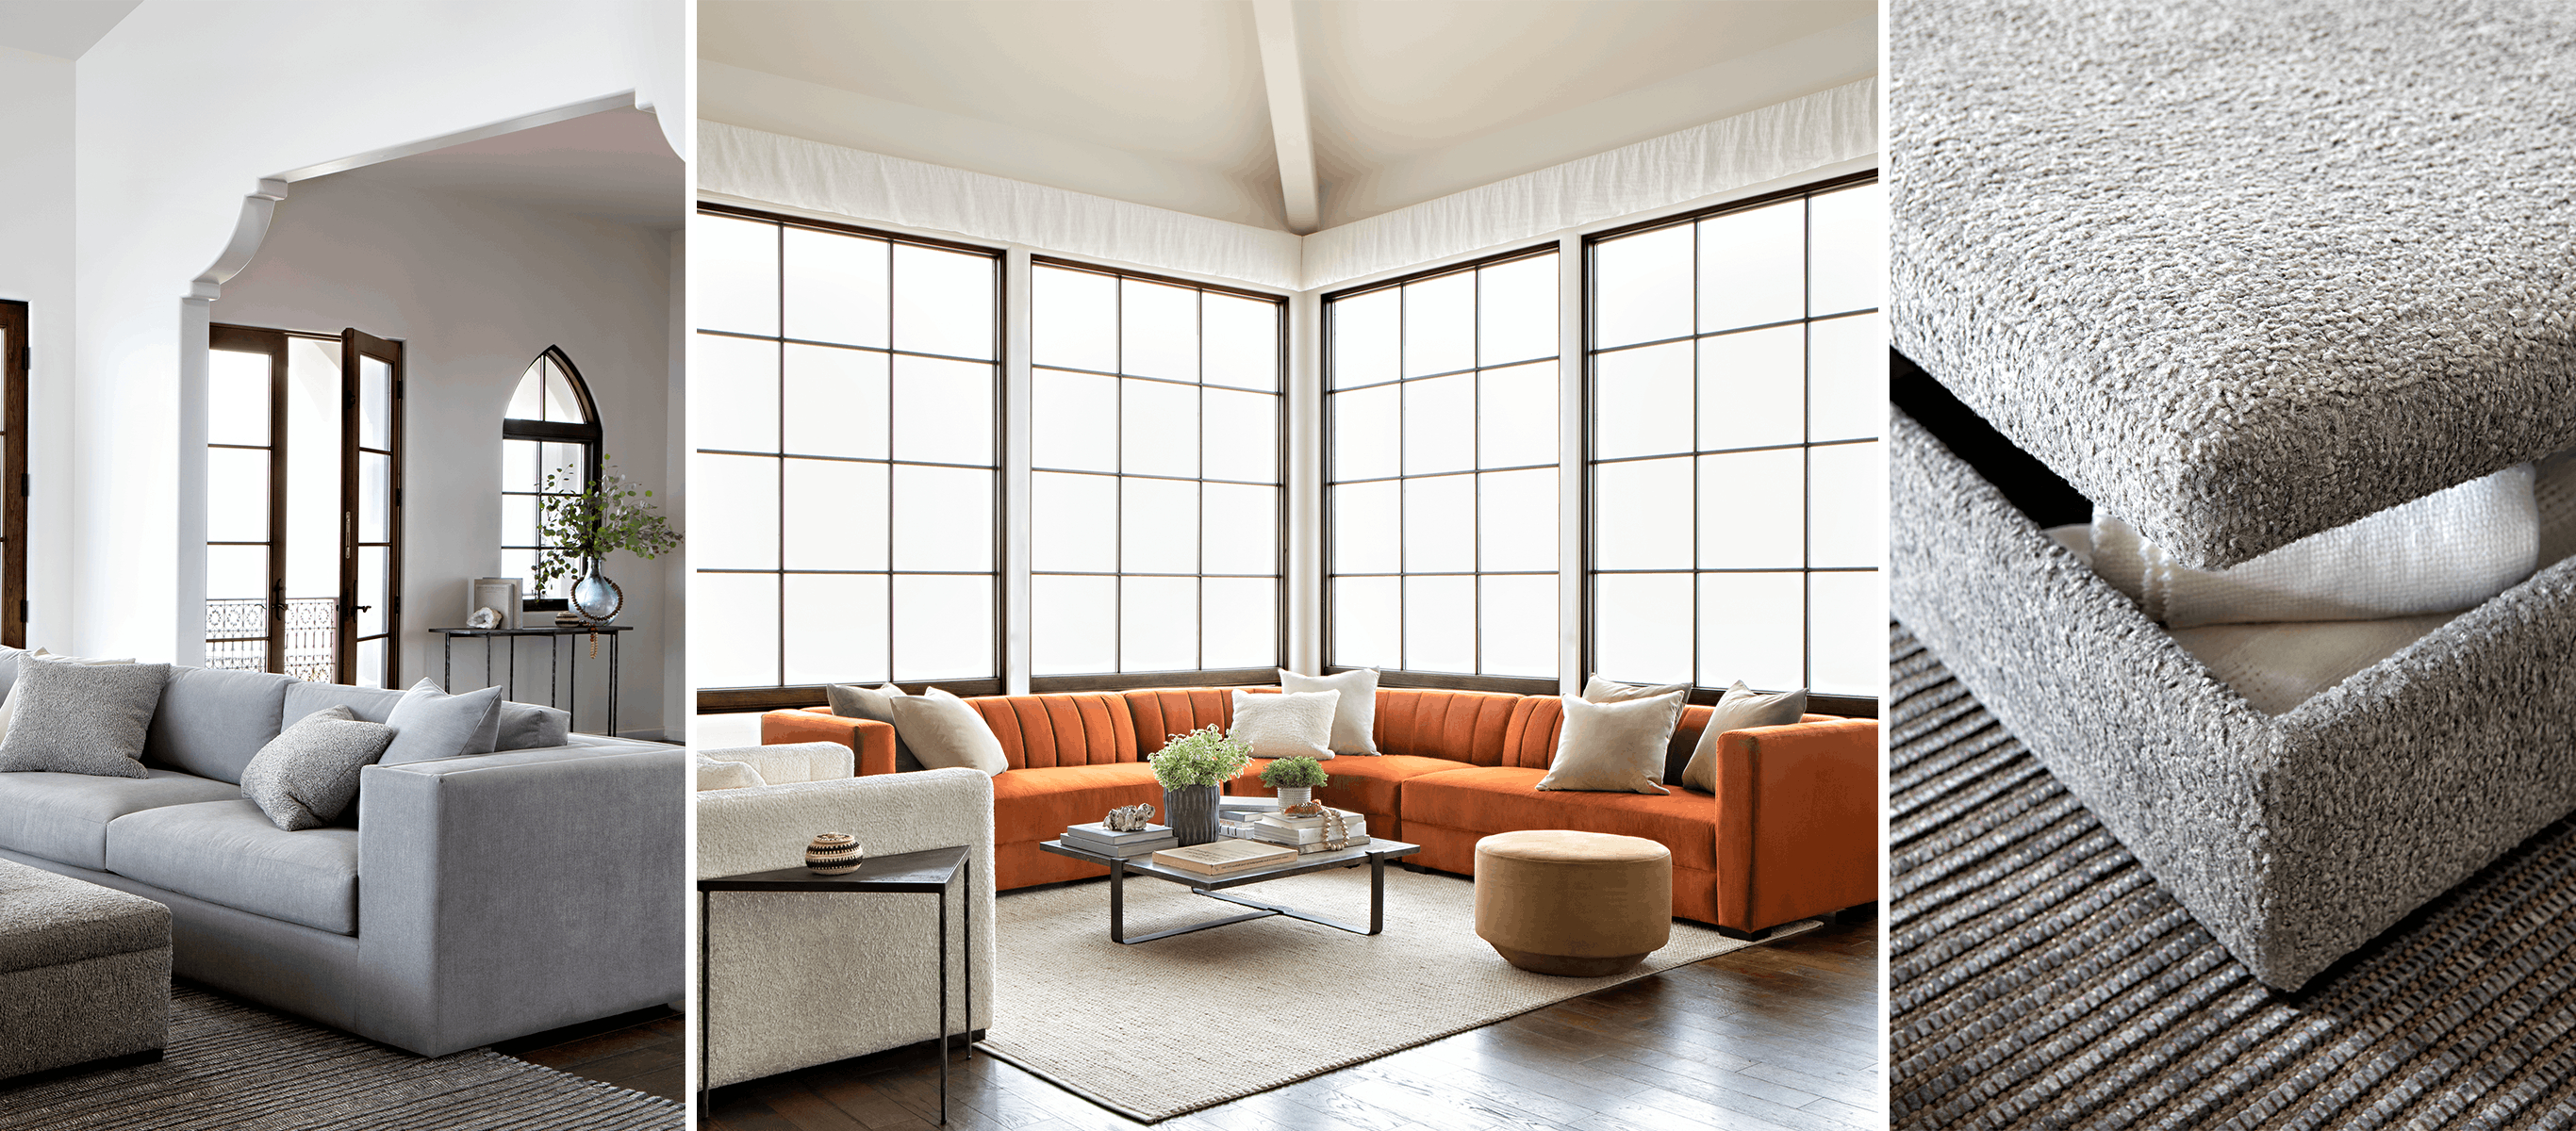 Nate Berkus Just Launched A Home Collection With Hubby Jeremiah Intended For Recent Gwen Sofa Chairs By Nate Berkus And Jeremiah Brent (View 12 of 20)